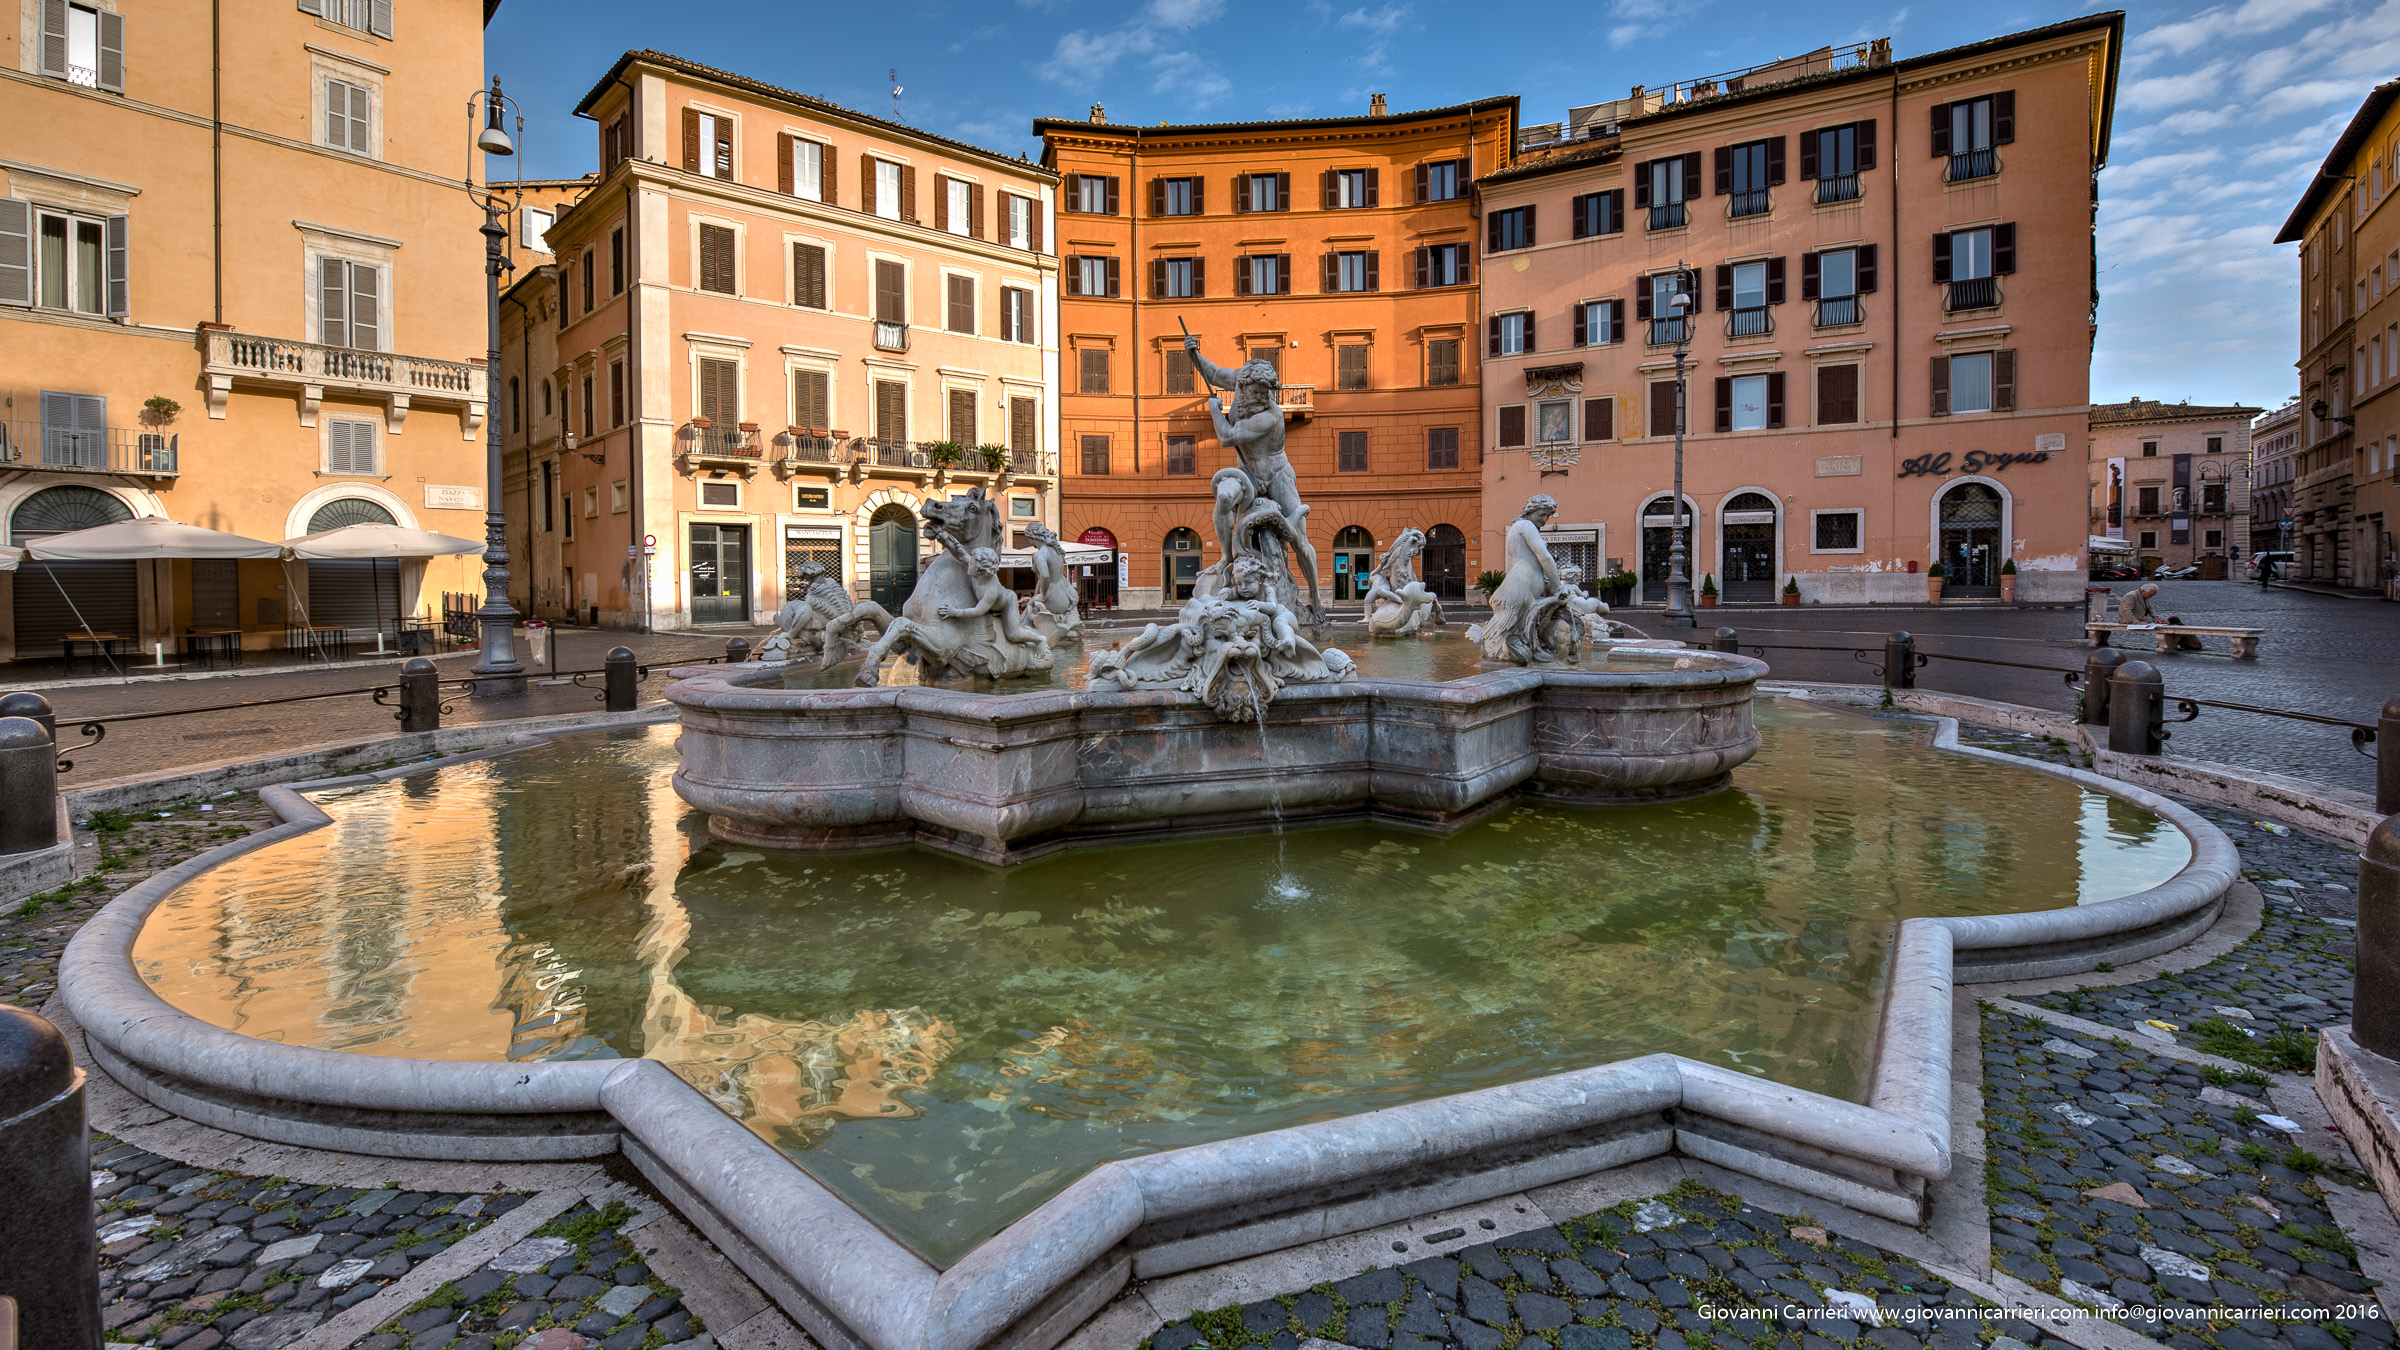 Neptune fountain in Piazza Navona